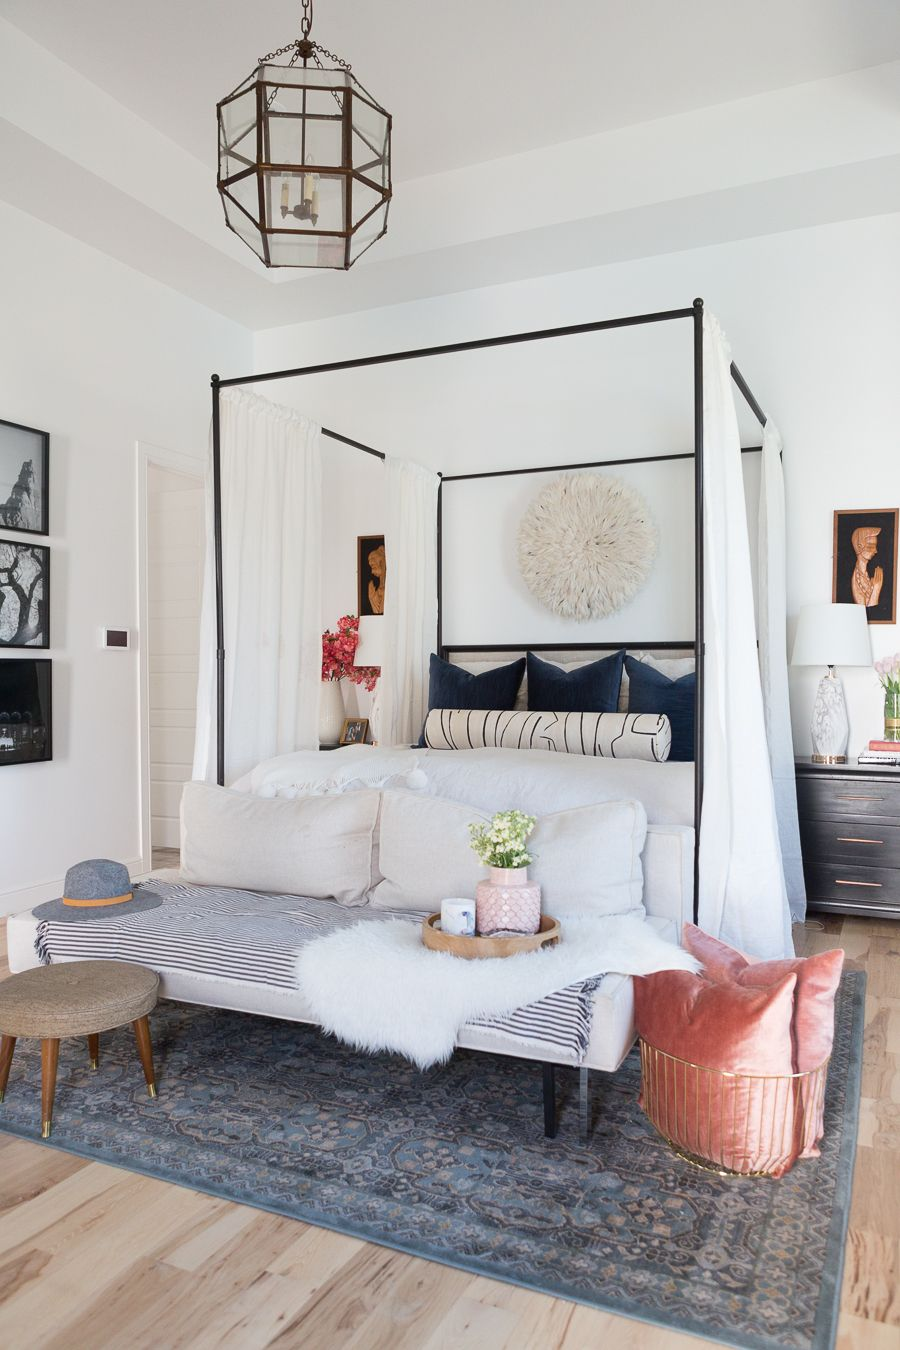 White master bedroom decor  How to Use a Juju Hat in Home Decor  Bedroom  Pinterest  Juju hat